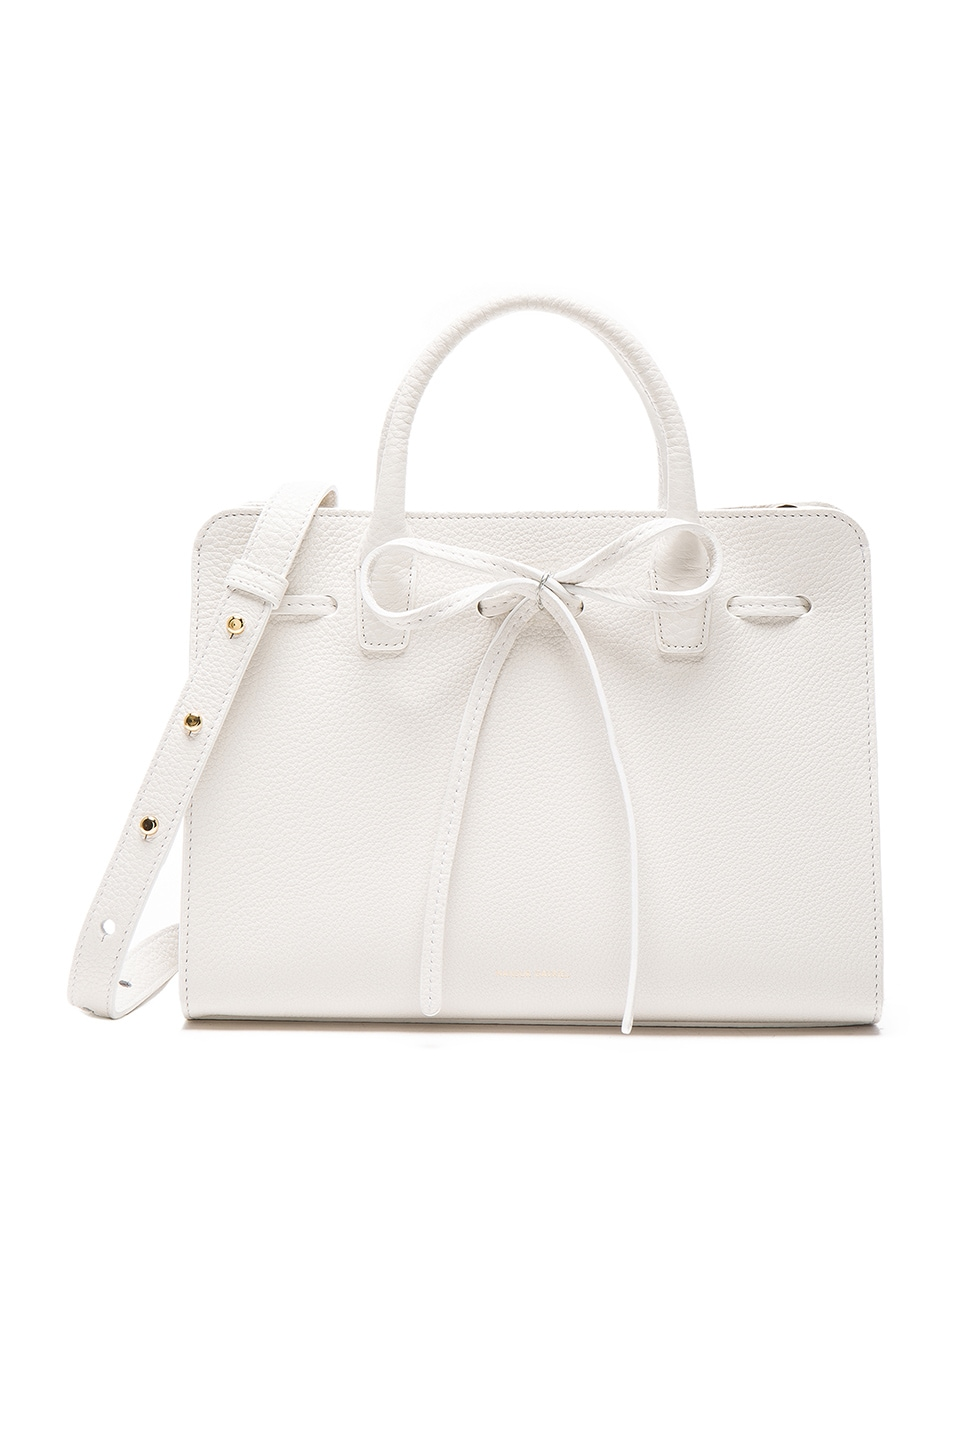 Image 1 of Mansur Gavriel Mini Sun Bag in White Tumble